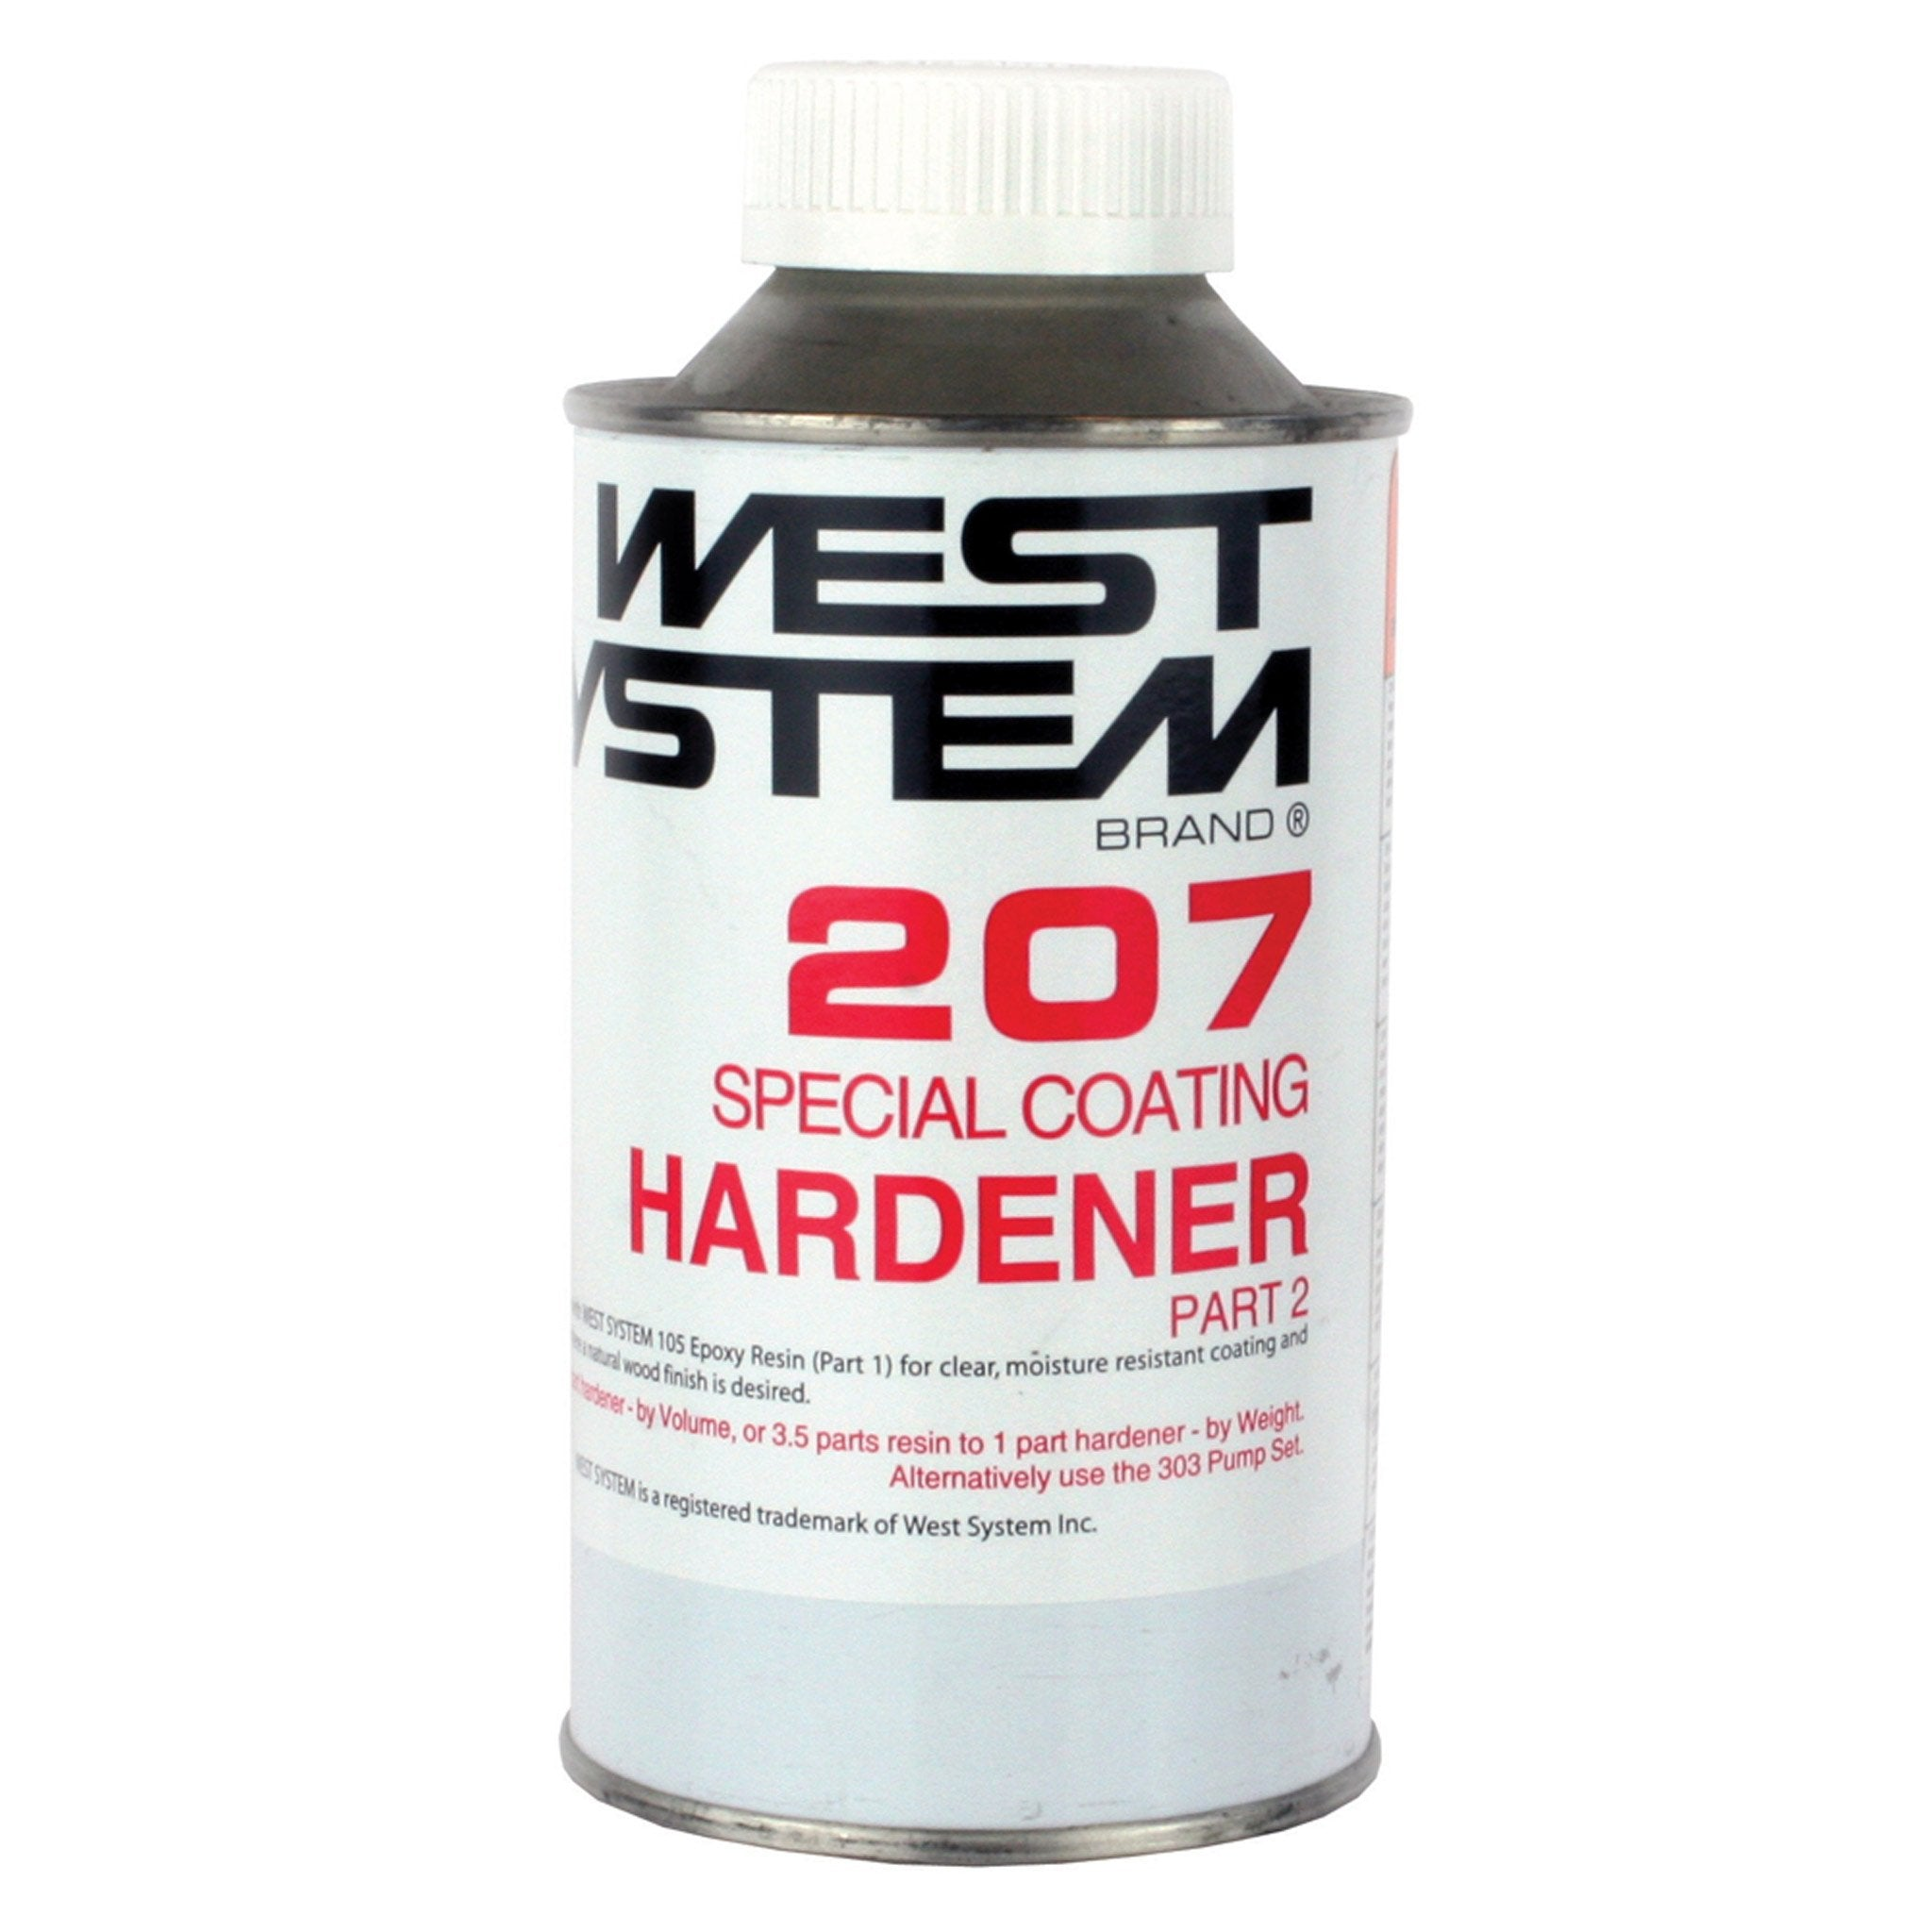 West System 207 Clear Coating - Arthur Beale